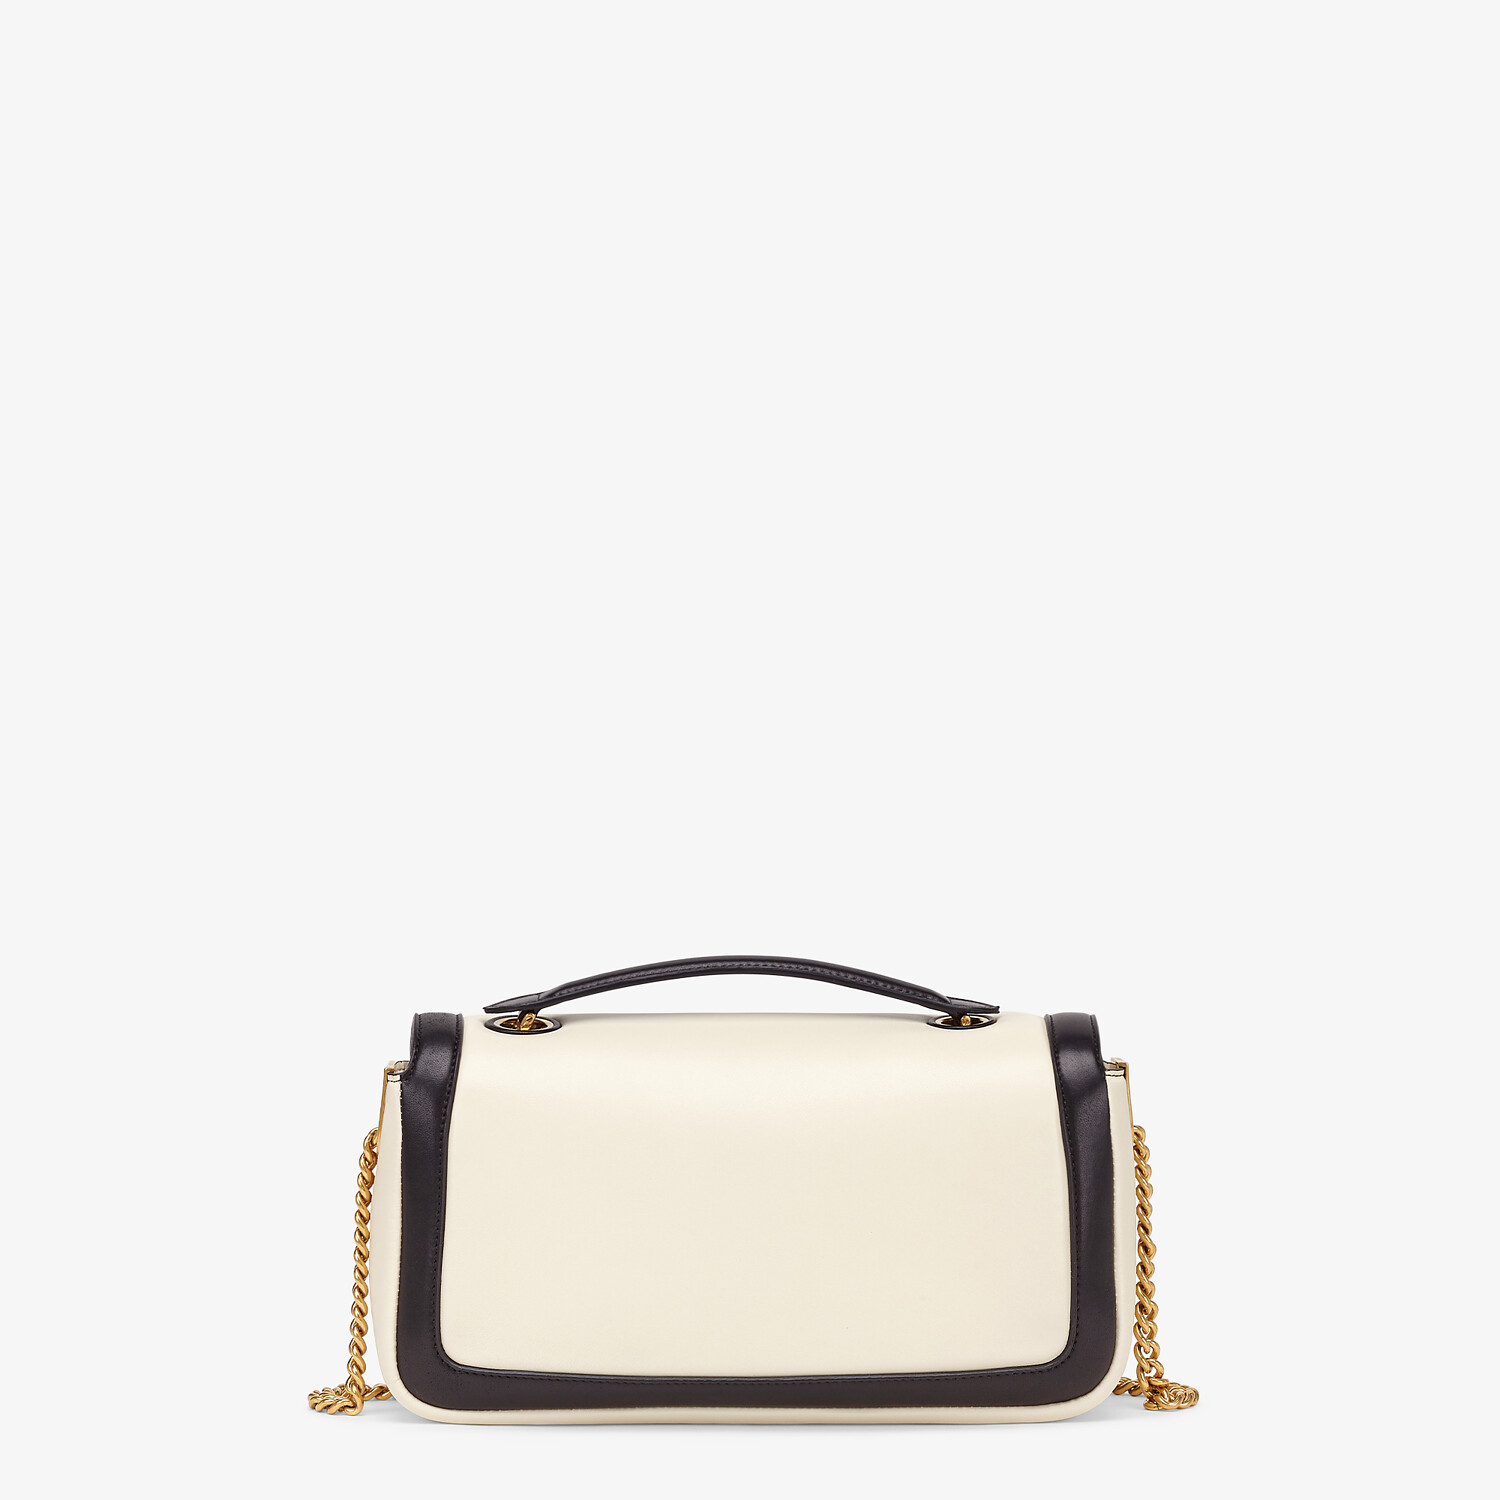 FENDI BAGUETTE CHAIN - Black and white nappa leather bag - view 4 detail